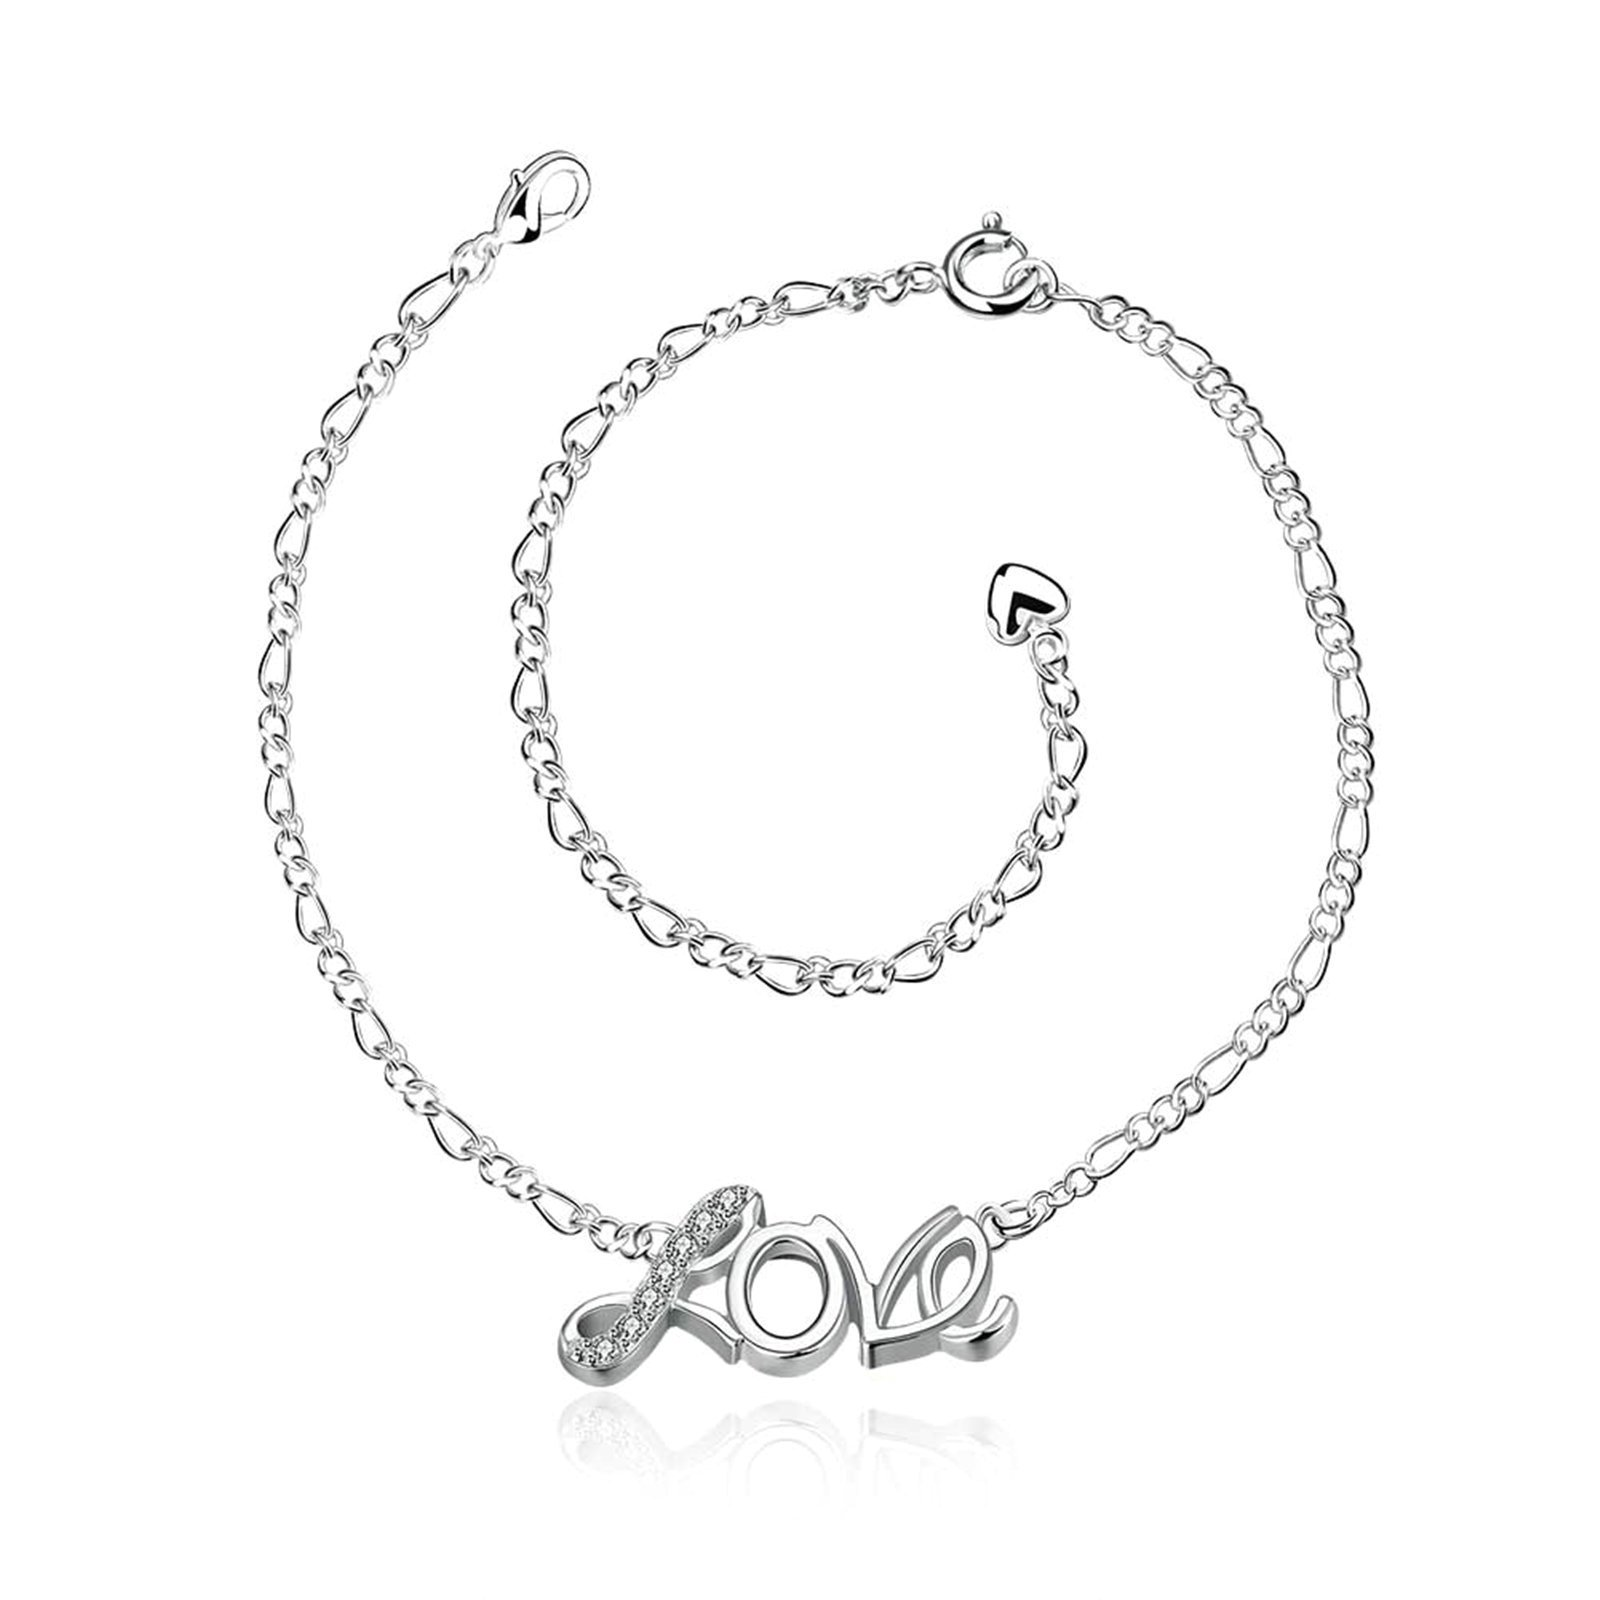 Adisaer Silver Plated Anklet Bracelet 20+10CM Chain Love Cubic Zirconia Silver Womens Beach Foot Jewelry